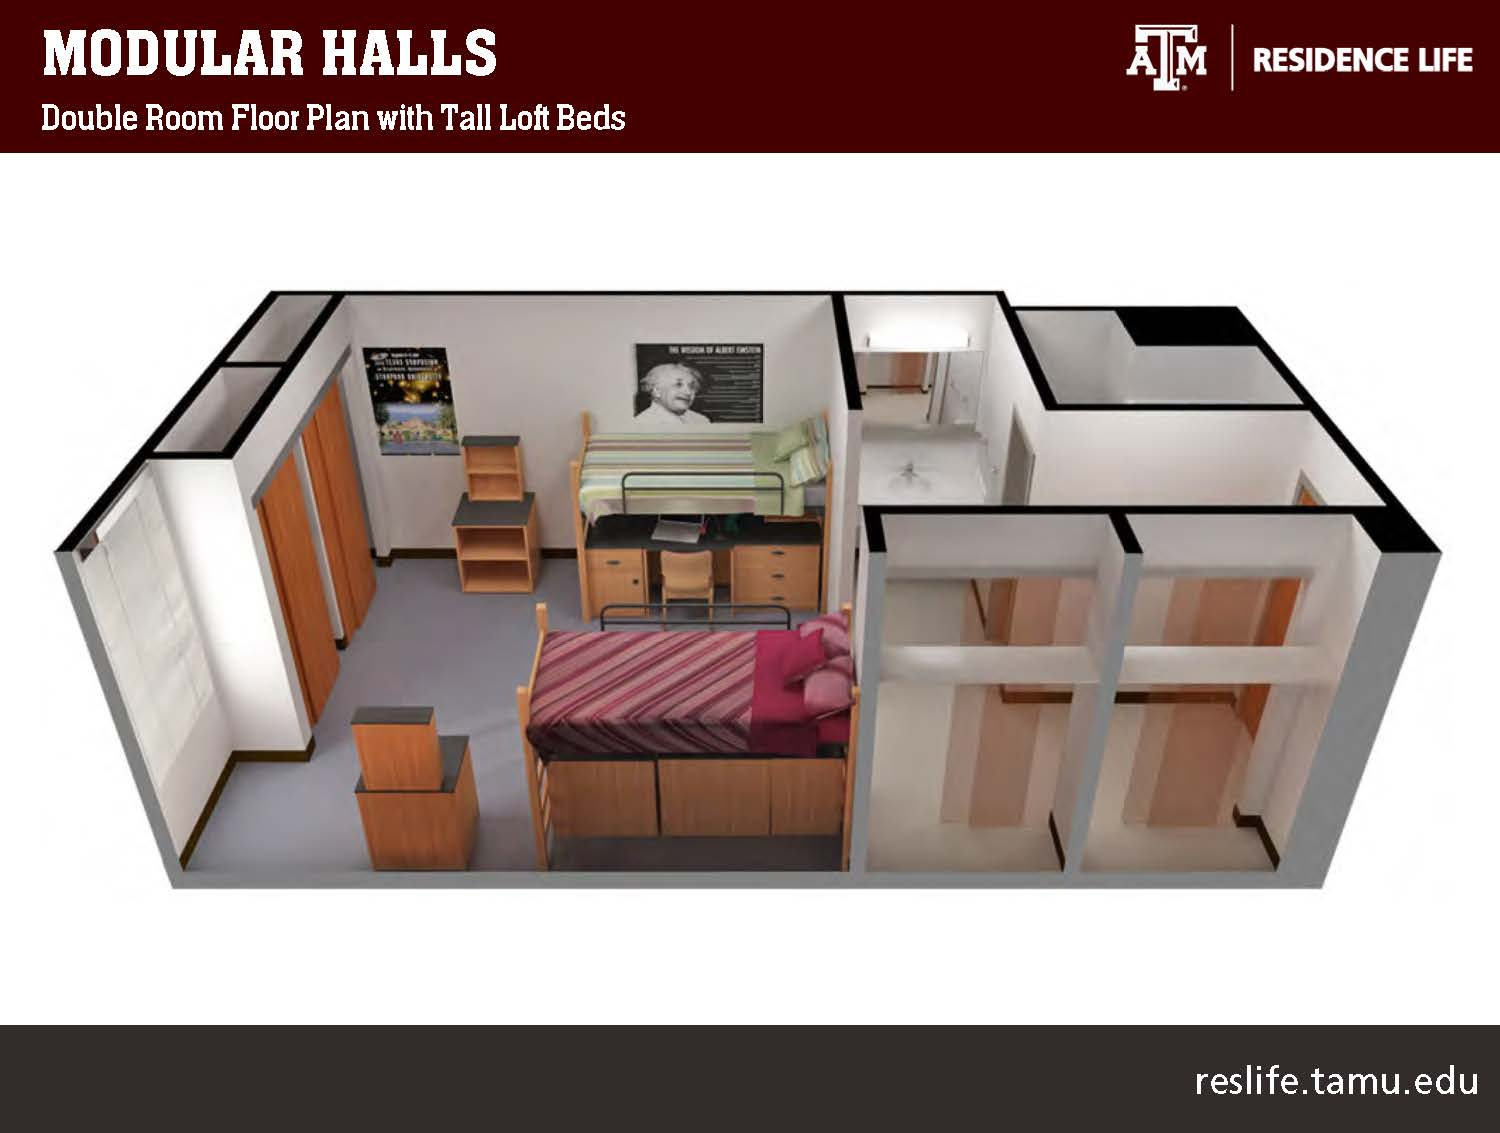 Side View of a 3-D Floor Plan, 4 closets, sink, bathroom, 2 beds, 2 storage units